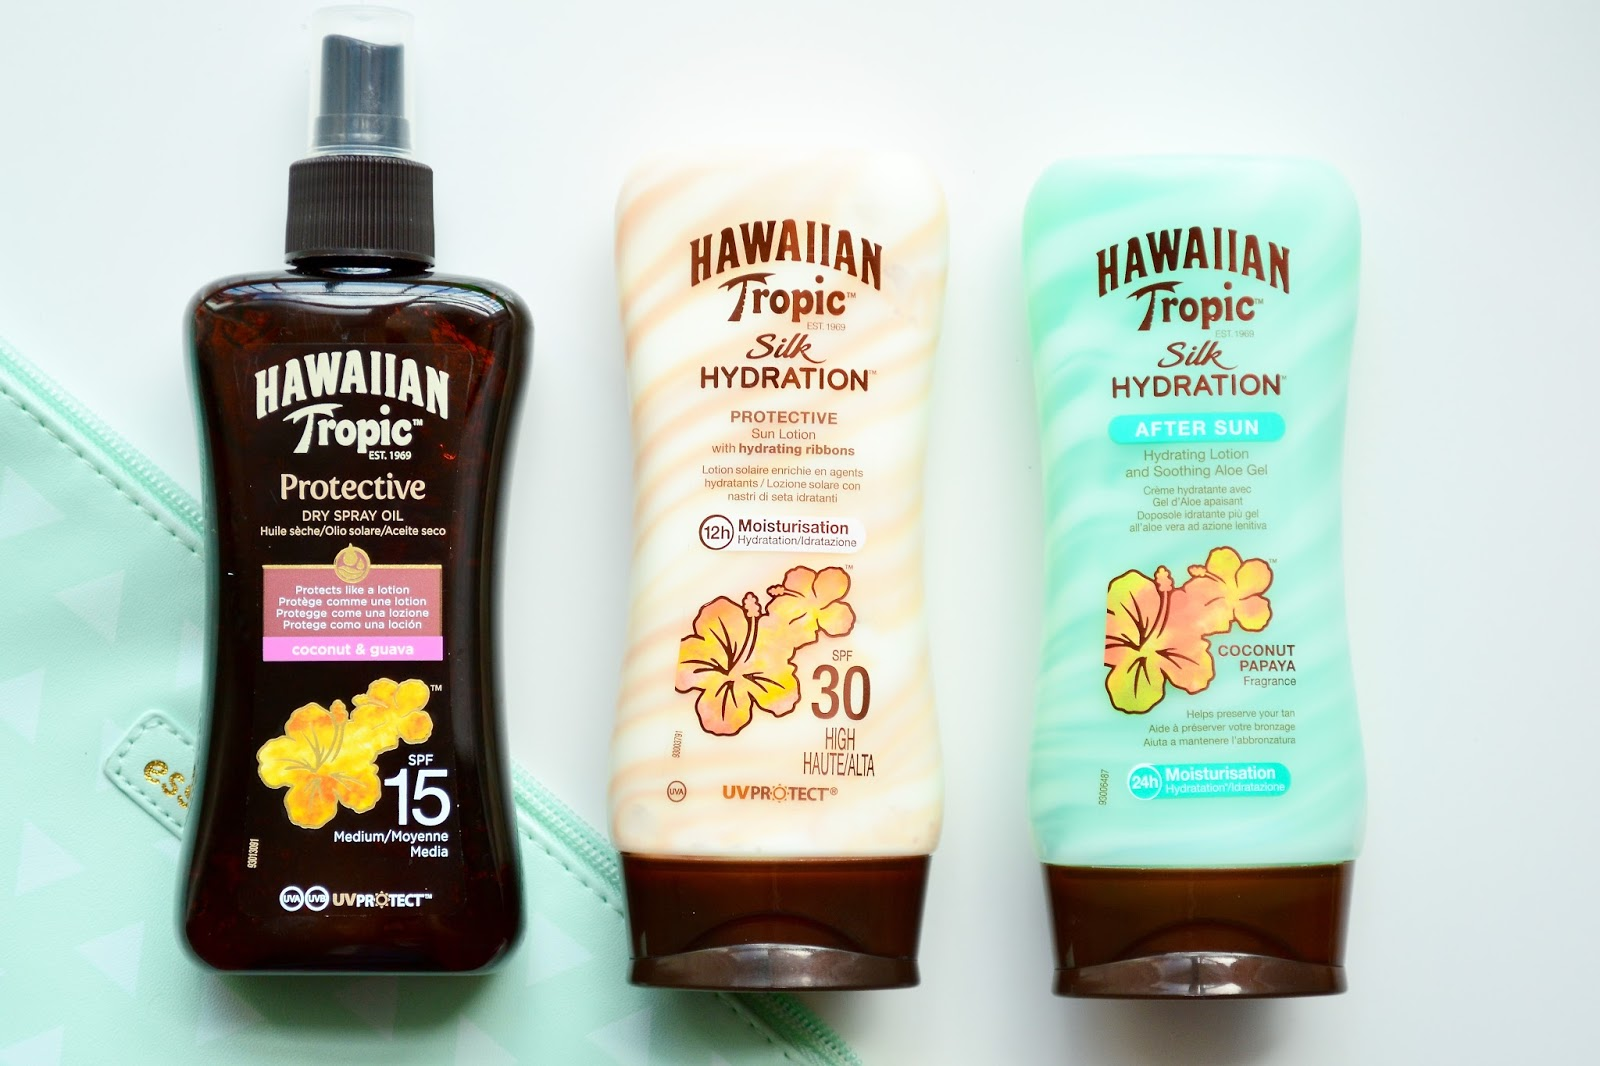 Hawaiian Tropic Silk Hydration, Hawaiian Tropic Body Butter, Banana Boat Aloe Gel